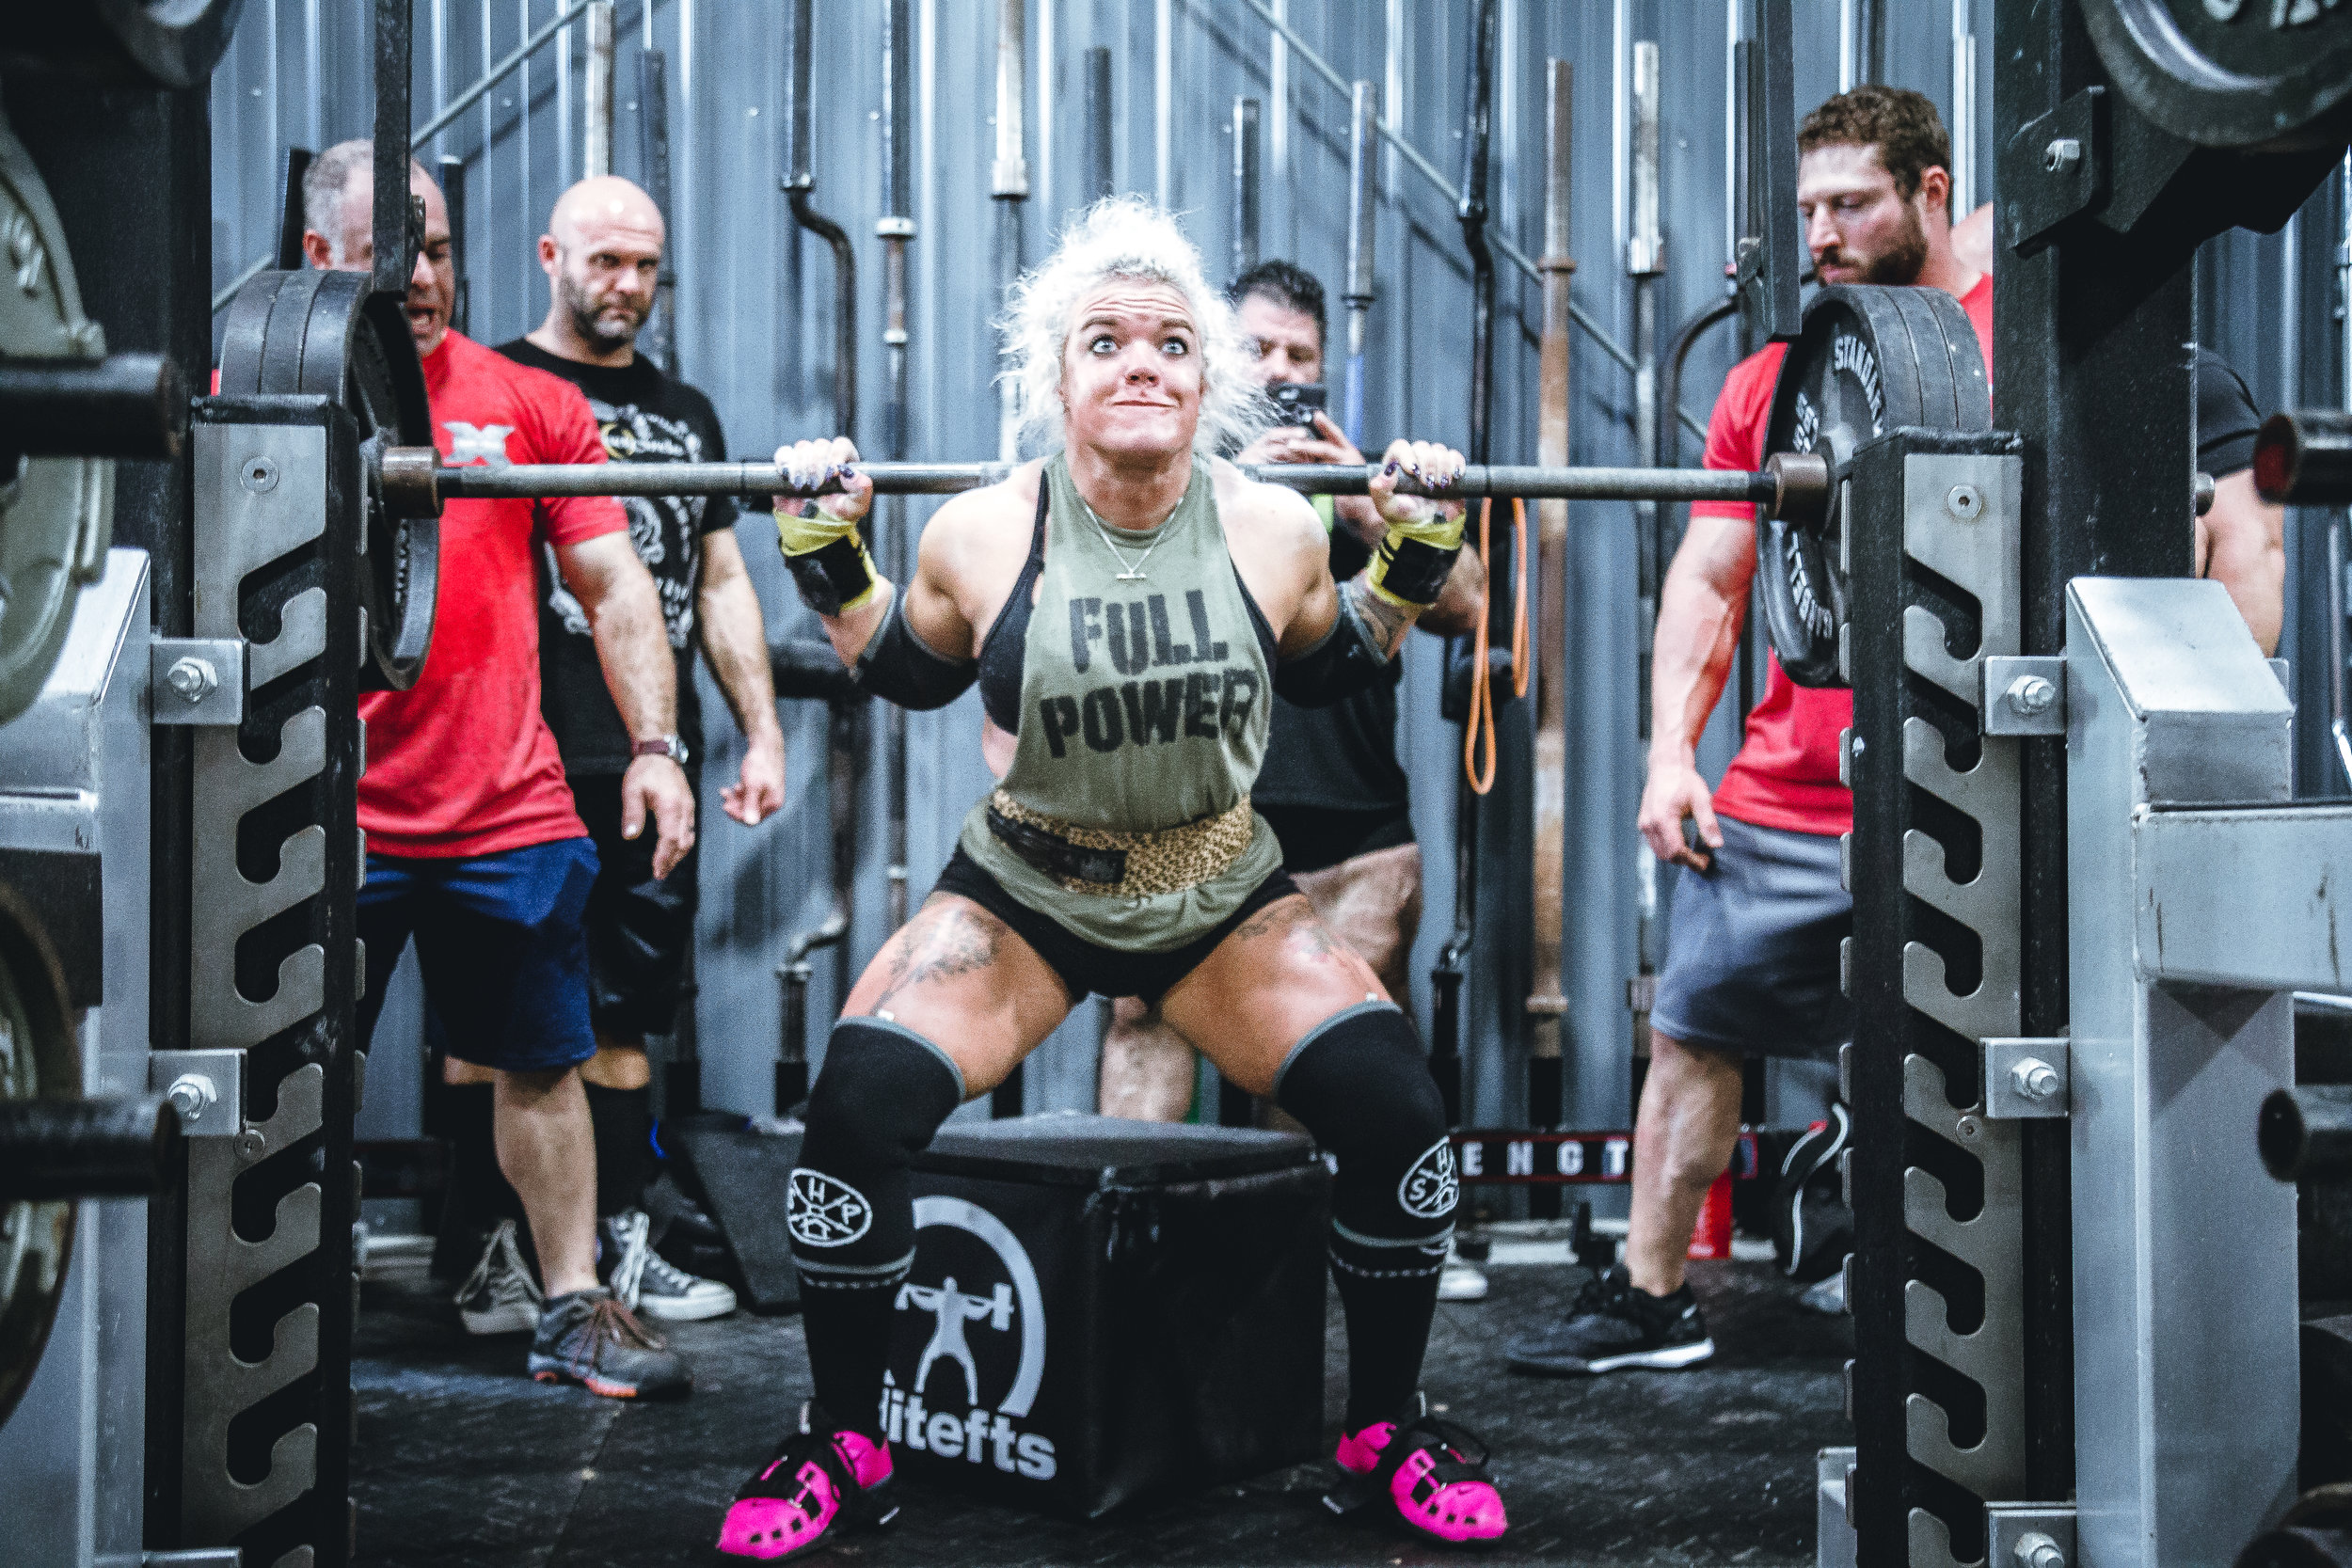 WHY DO EXPERTS SAY WE SHOULD LIFT WEIGHTS?